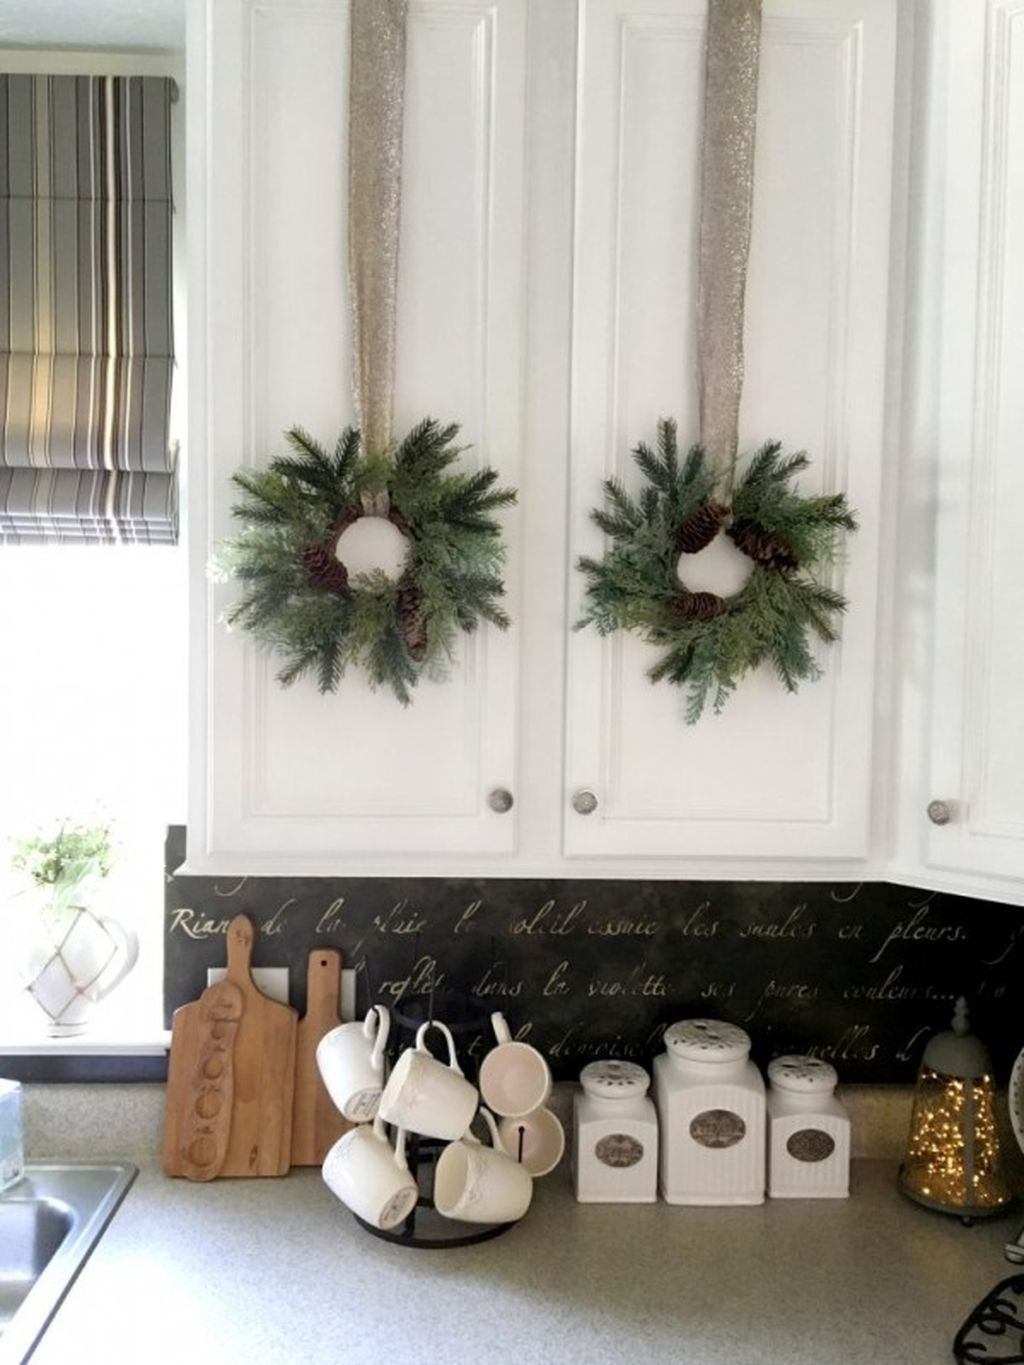 46 Easy and Inexpensive Kitchen Decoration Ideas for Christmas ...